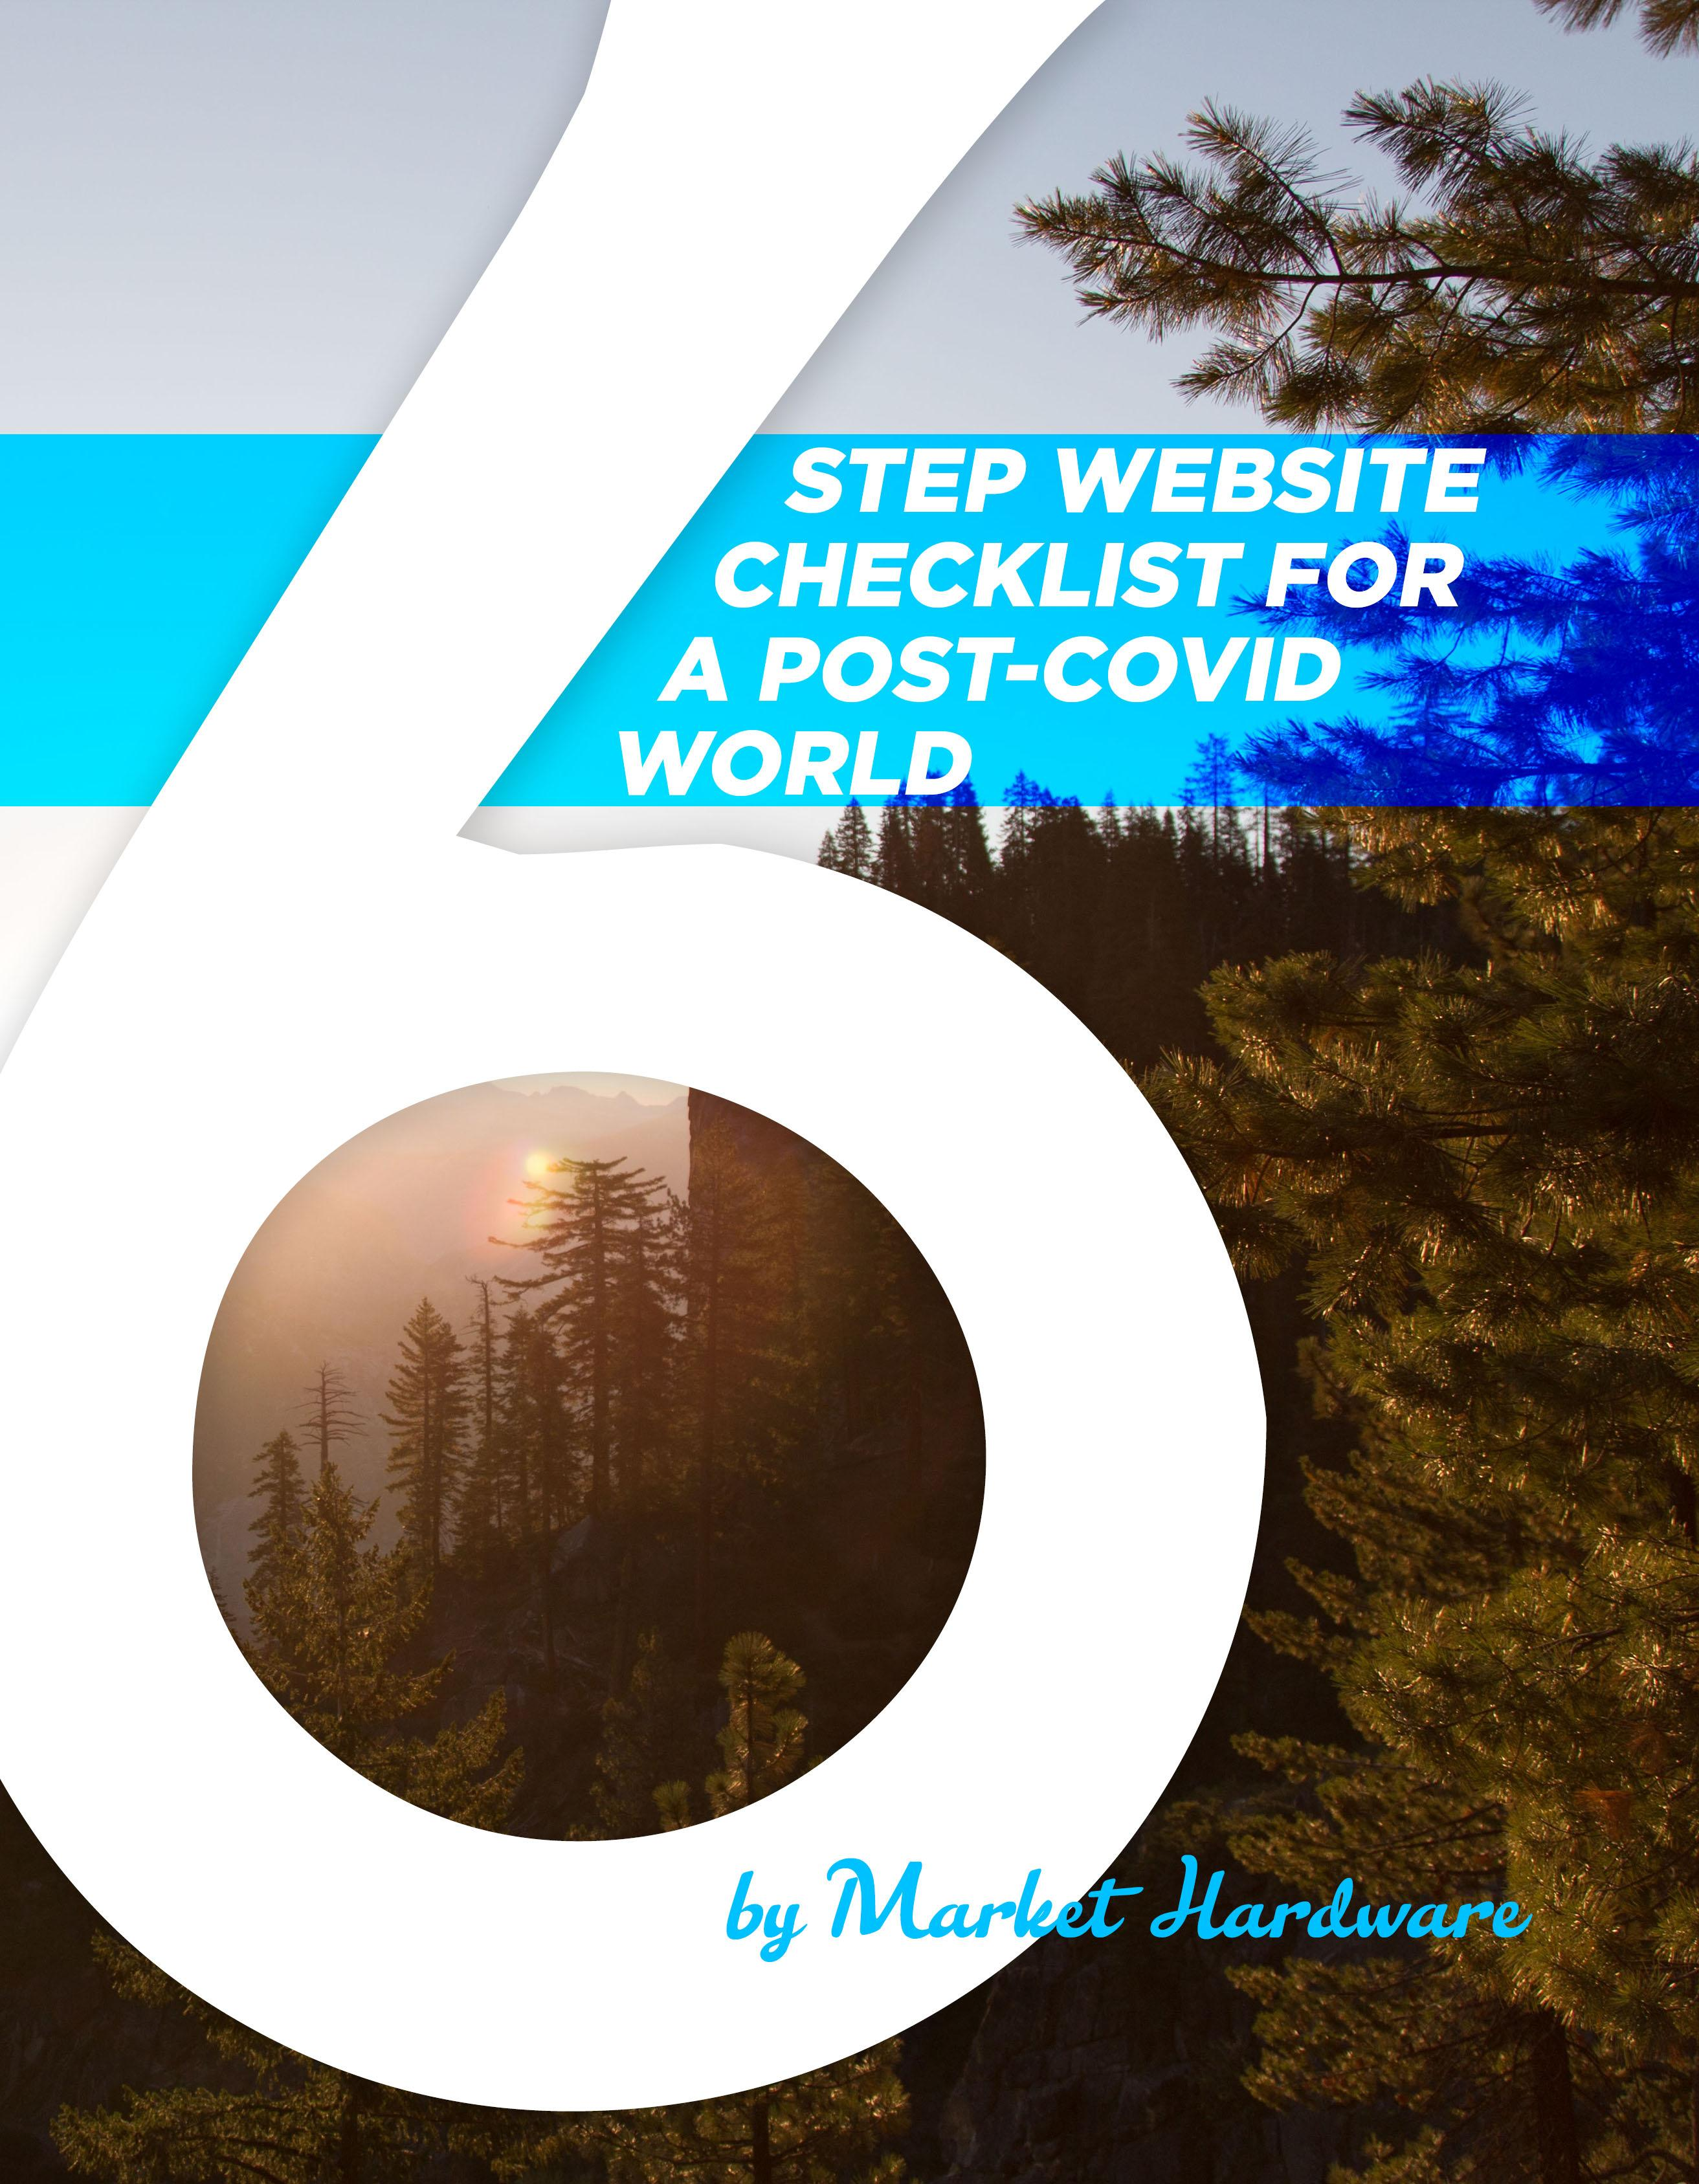 Page 26 of 6 STEP WEBSITE CHECKLIST FOR A POST-COVID WORLD